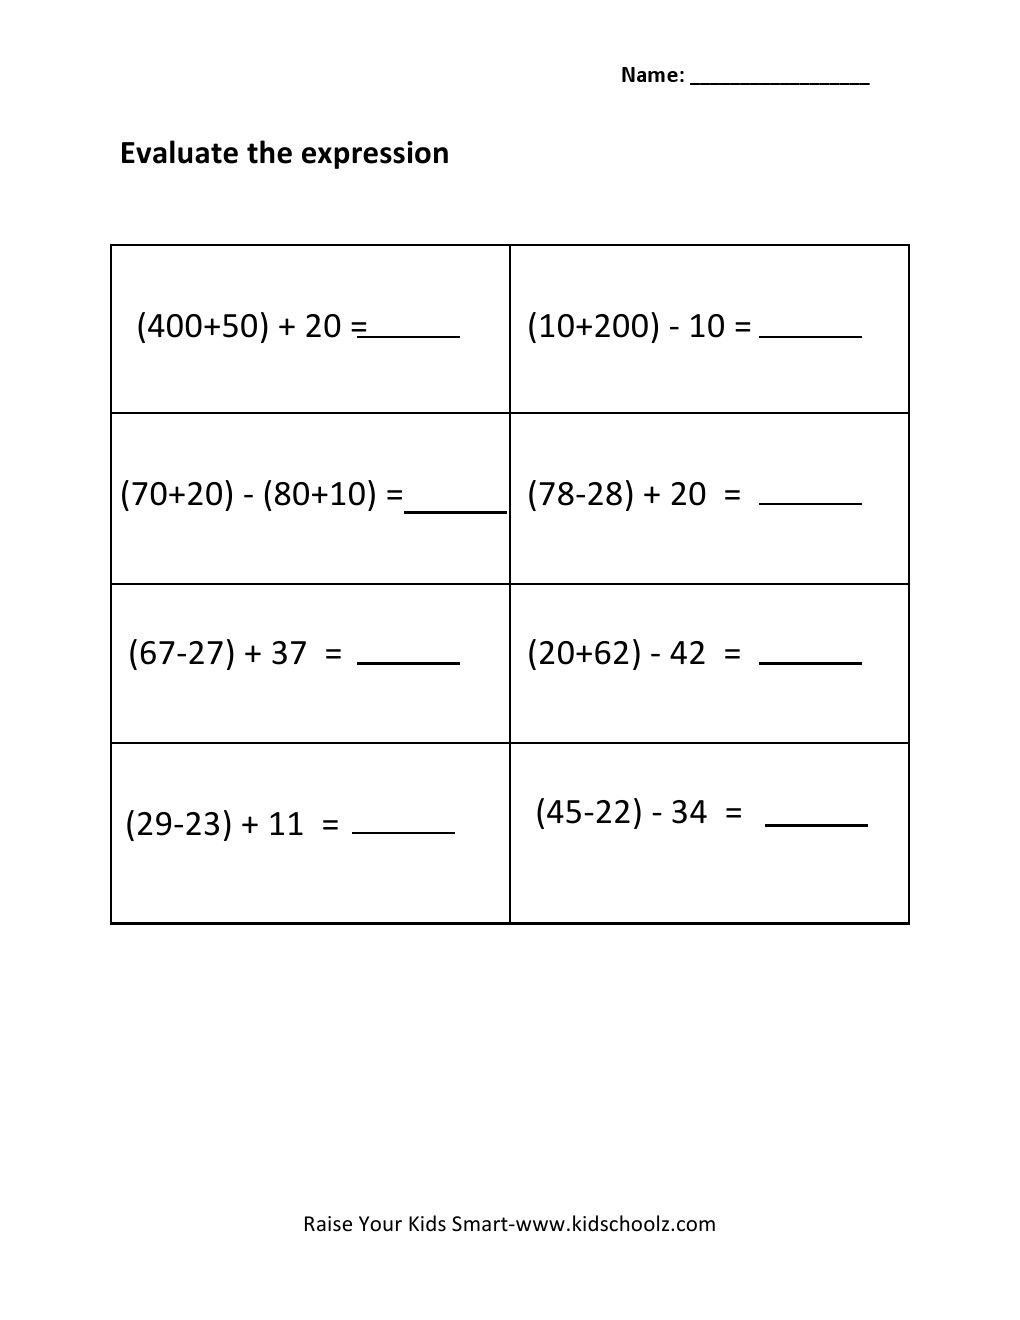 Writing and Evaluating Expressions Worksheet Evaluating Expressions Worksheet Pdf A Worksheet is Really